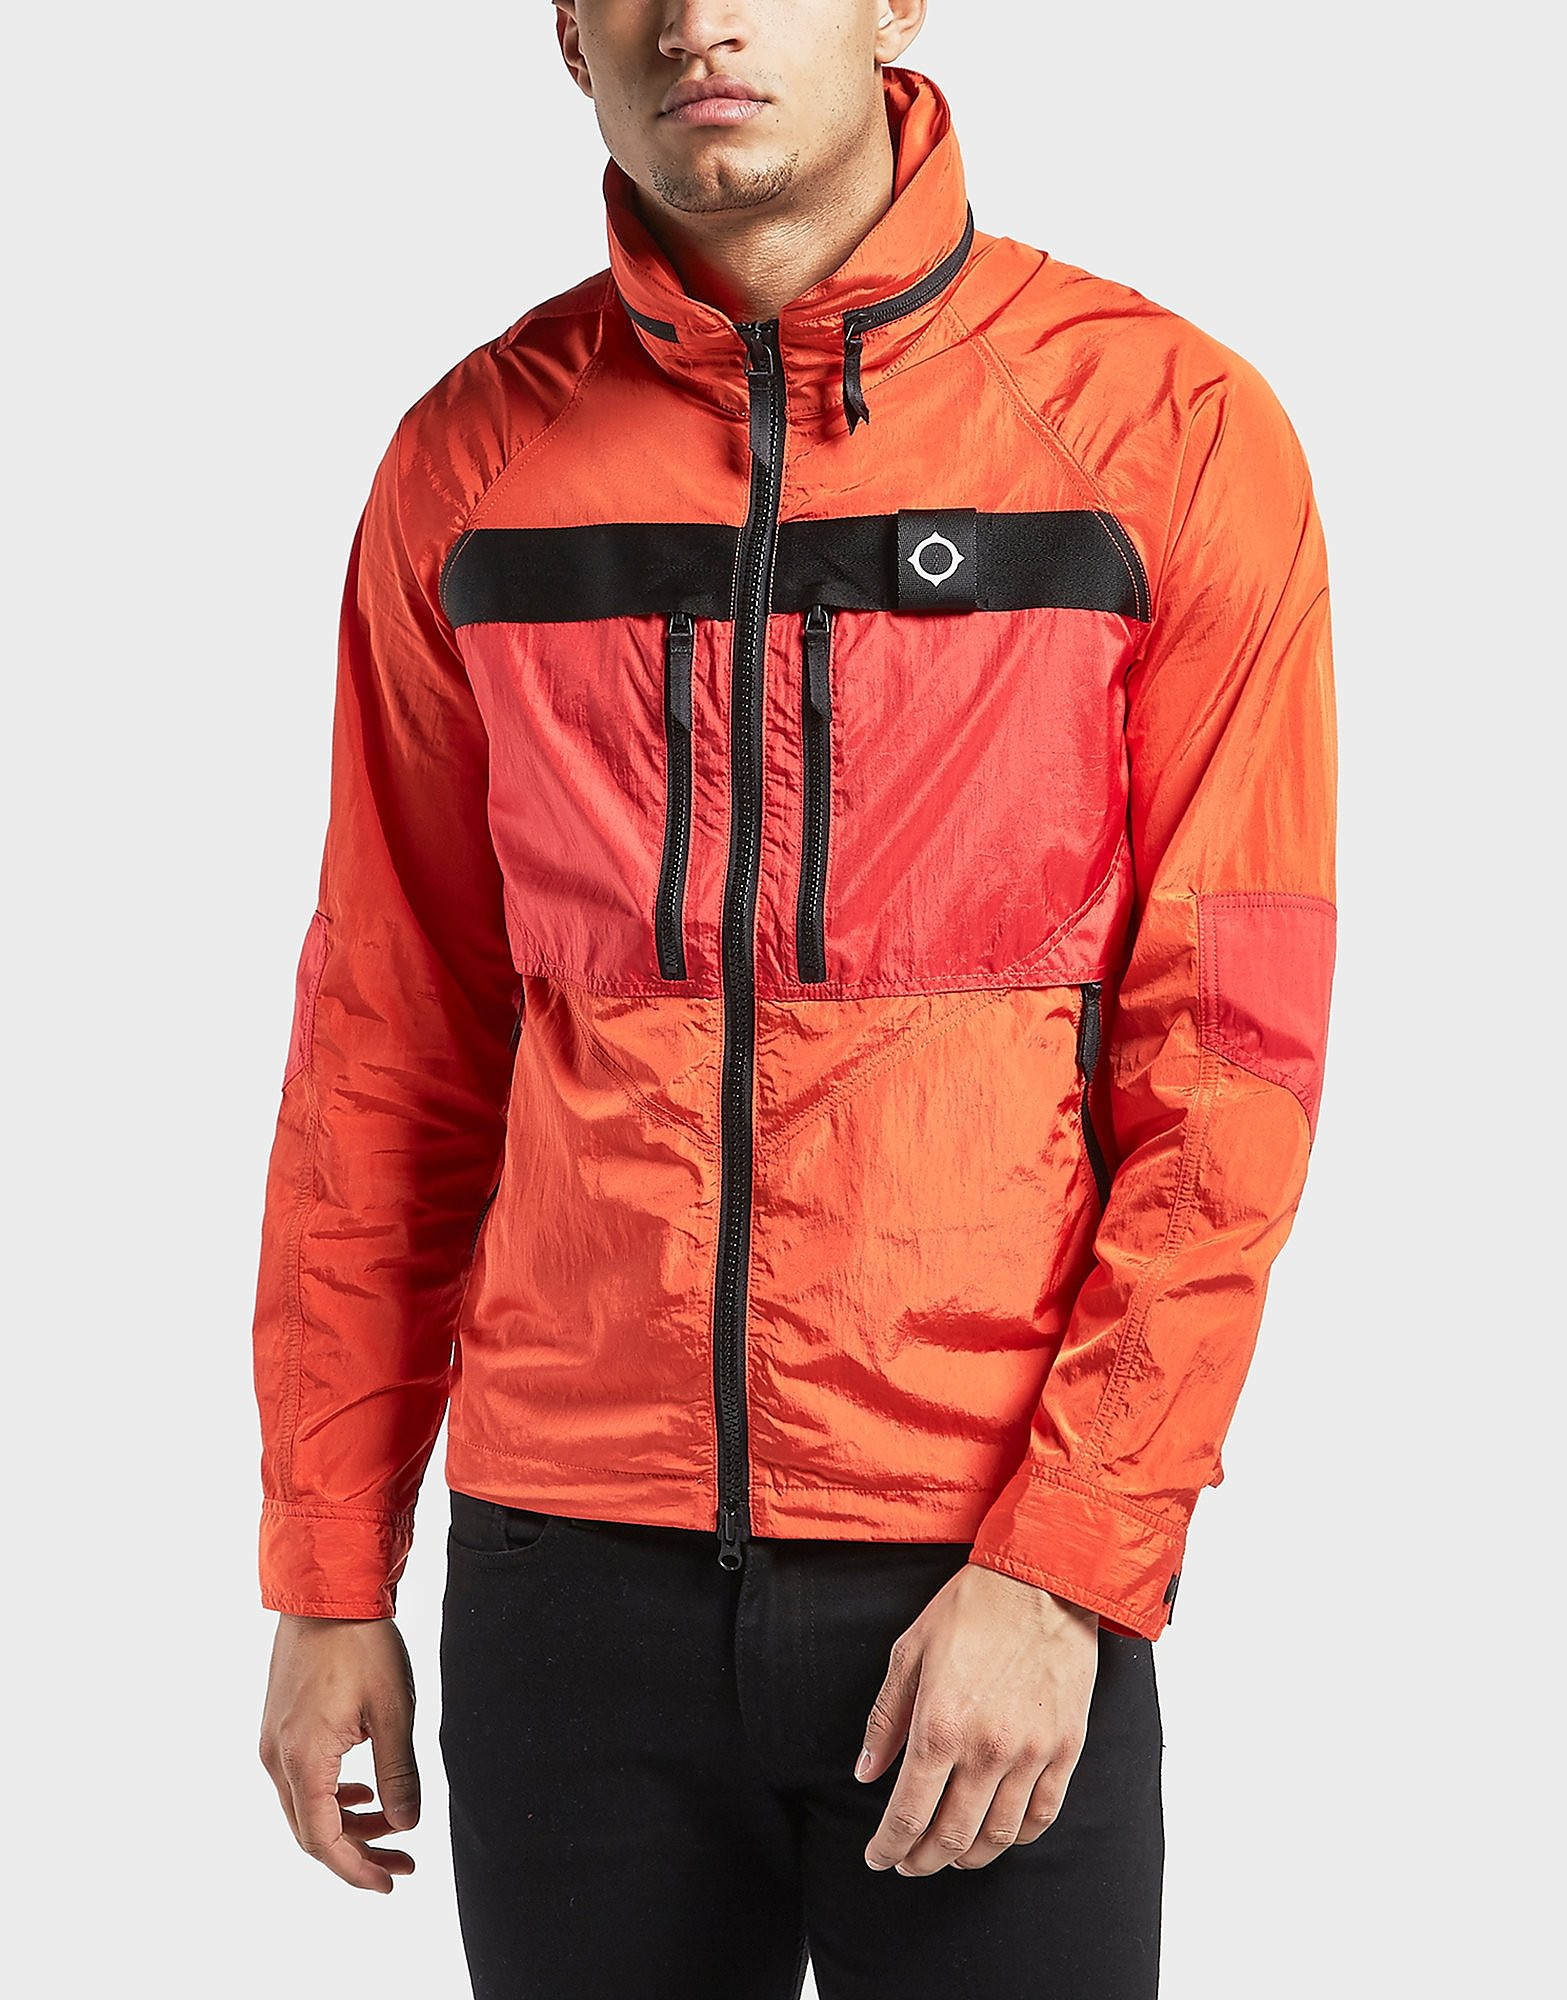 MA STRUM Corvus Nylon Lightweight Jacket